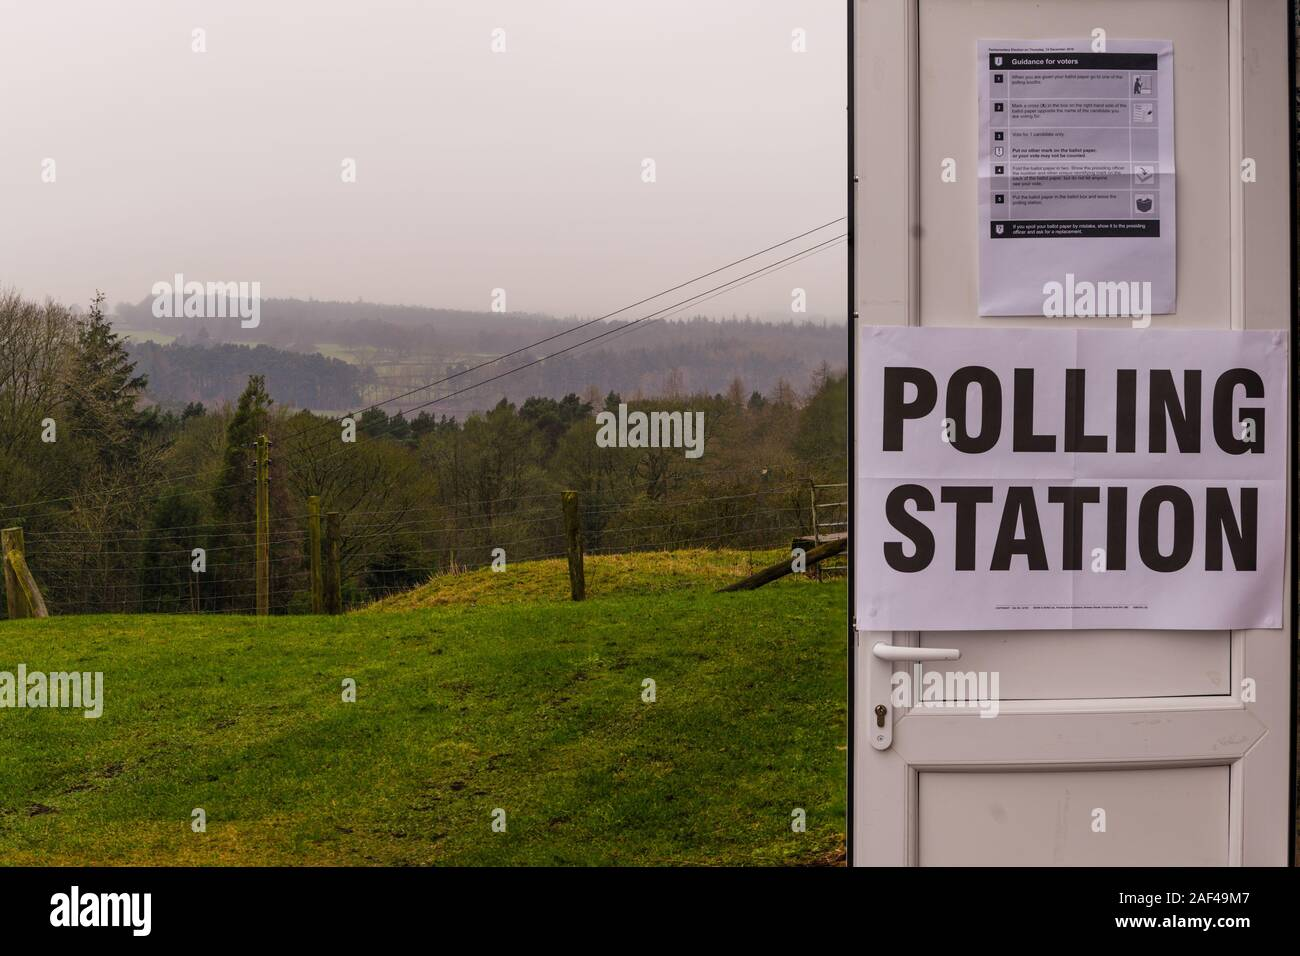 Harrogate District, Yorkshire, UK. 12th Dec 2019. News: General Election Day in the United Kingdom, Harrogate, United Kingdom. 12th December, 2019. General views of open polling stations around the Harrogate district/Yorkshire Dales/Nidderdale. Polling stations open around the Harrogate and North Yorkshire district with bad weather forecast for different times of the day, including heavy rain, freezing mist and heavy fog Harrogate, North Yorkshire, UK. Credit: Caught Light Photography/Alamy Live News. Stock Photo